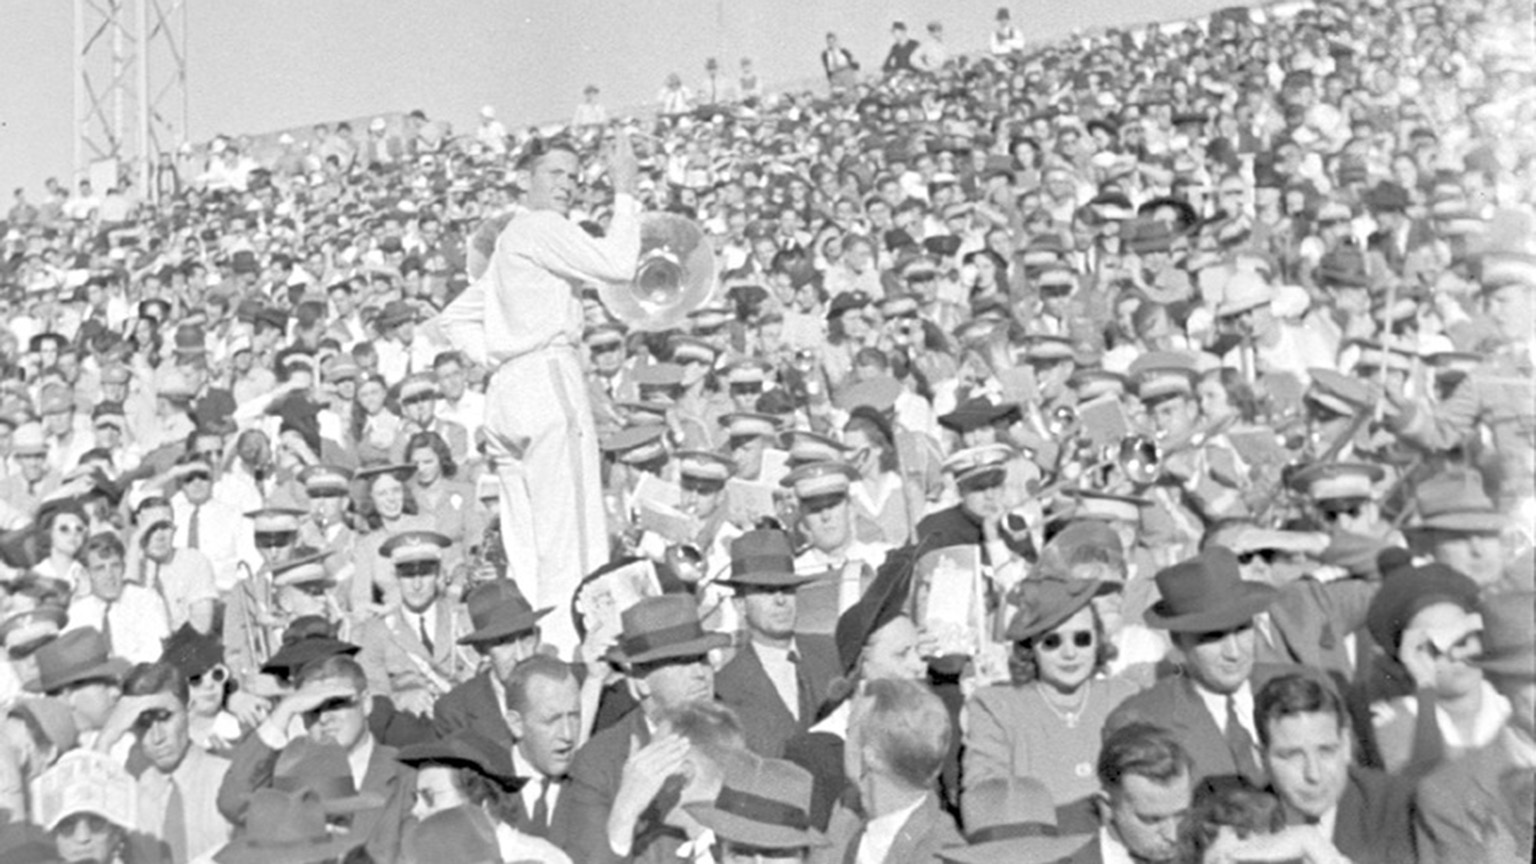 A shot of the crowd at a football game in the 40s.